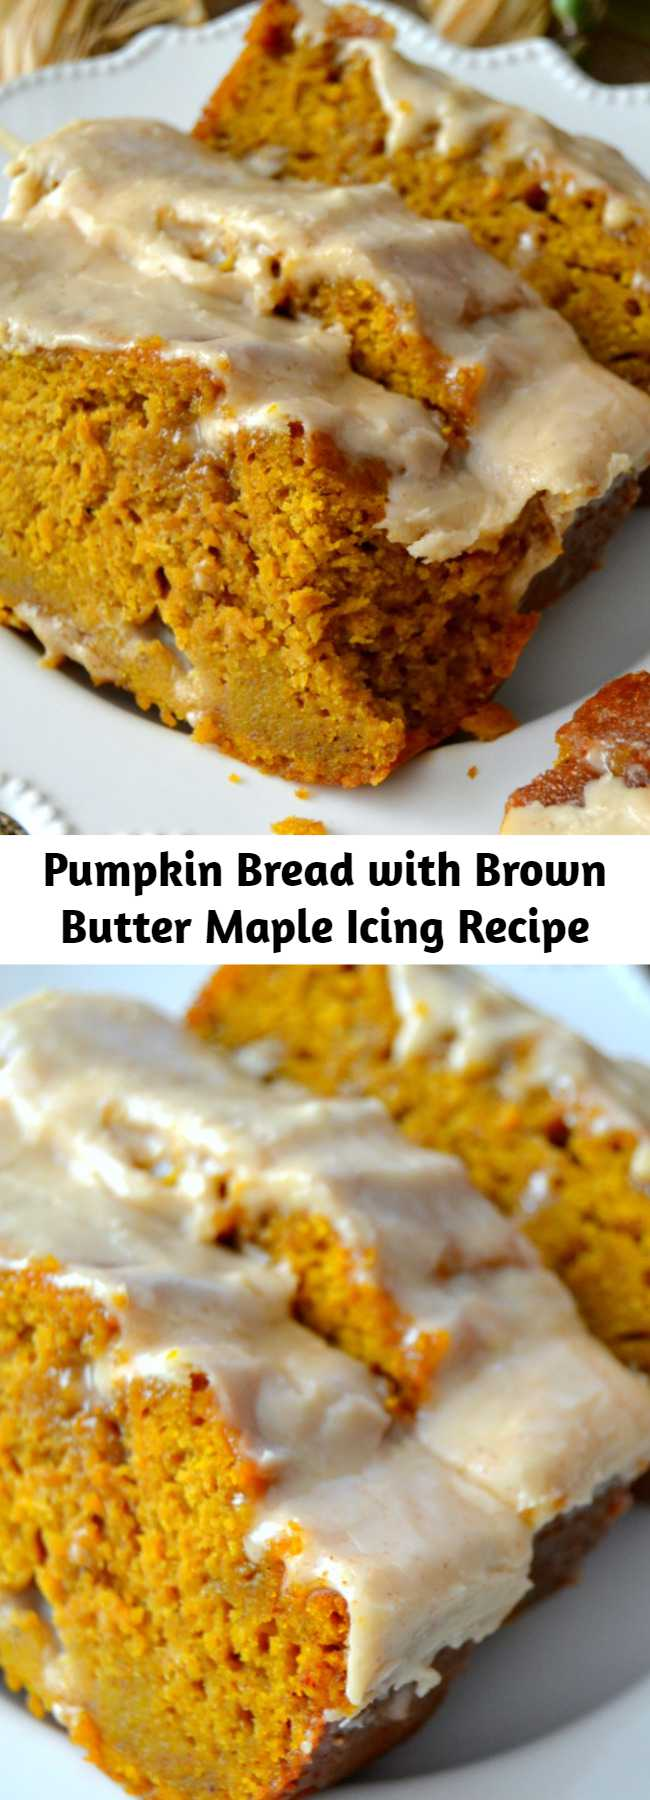 Pumpkin Bread with Brown Butter Maple Icing Recipe - The Best Pumpkin Bread with Brown Butter Maple Icing Recipe. Perfectly spiced, moist and tender, this Pumpkin Bread will soon become a family favorite! Leave it naked if you wish, or stud it with nuts - however, I prefer mine with this simple brown butter maple glaze. I'm sure you will, too!